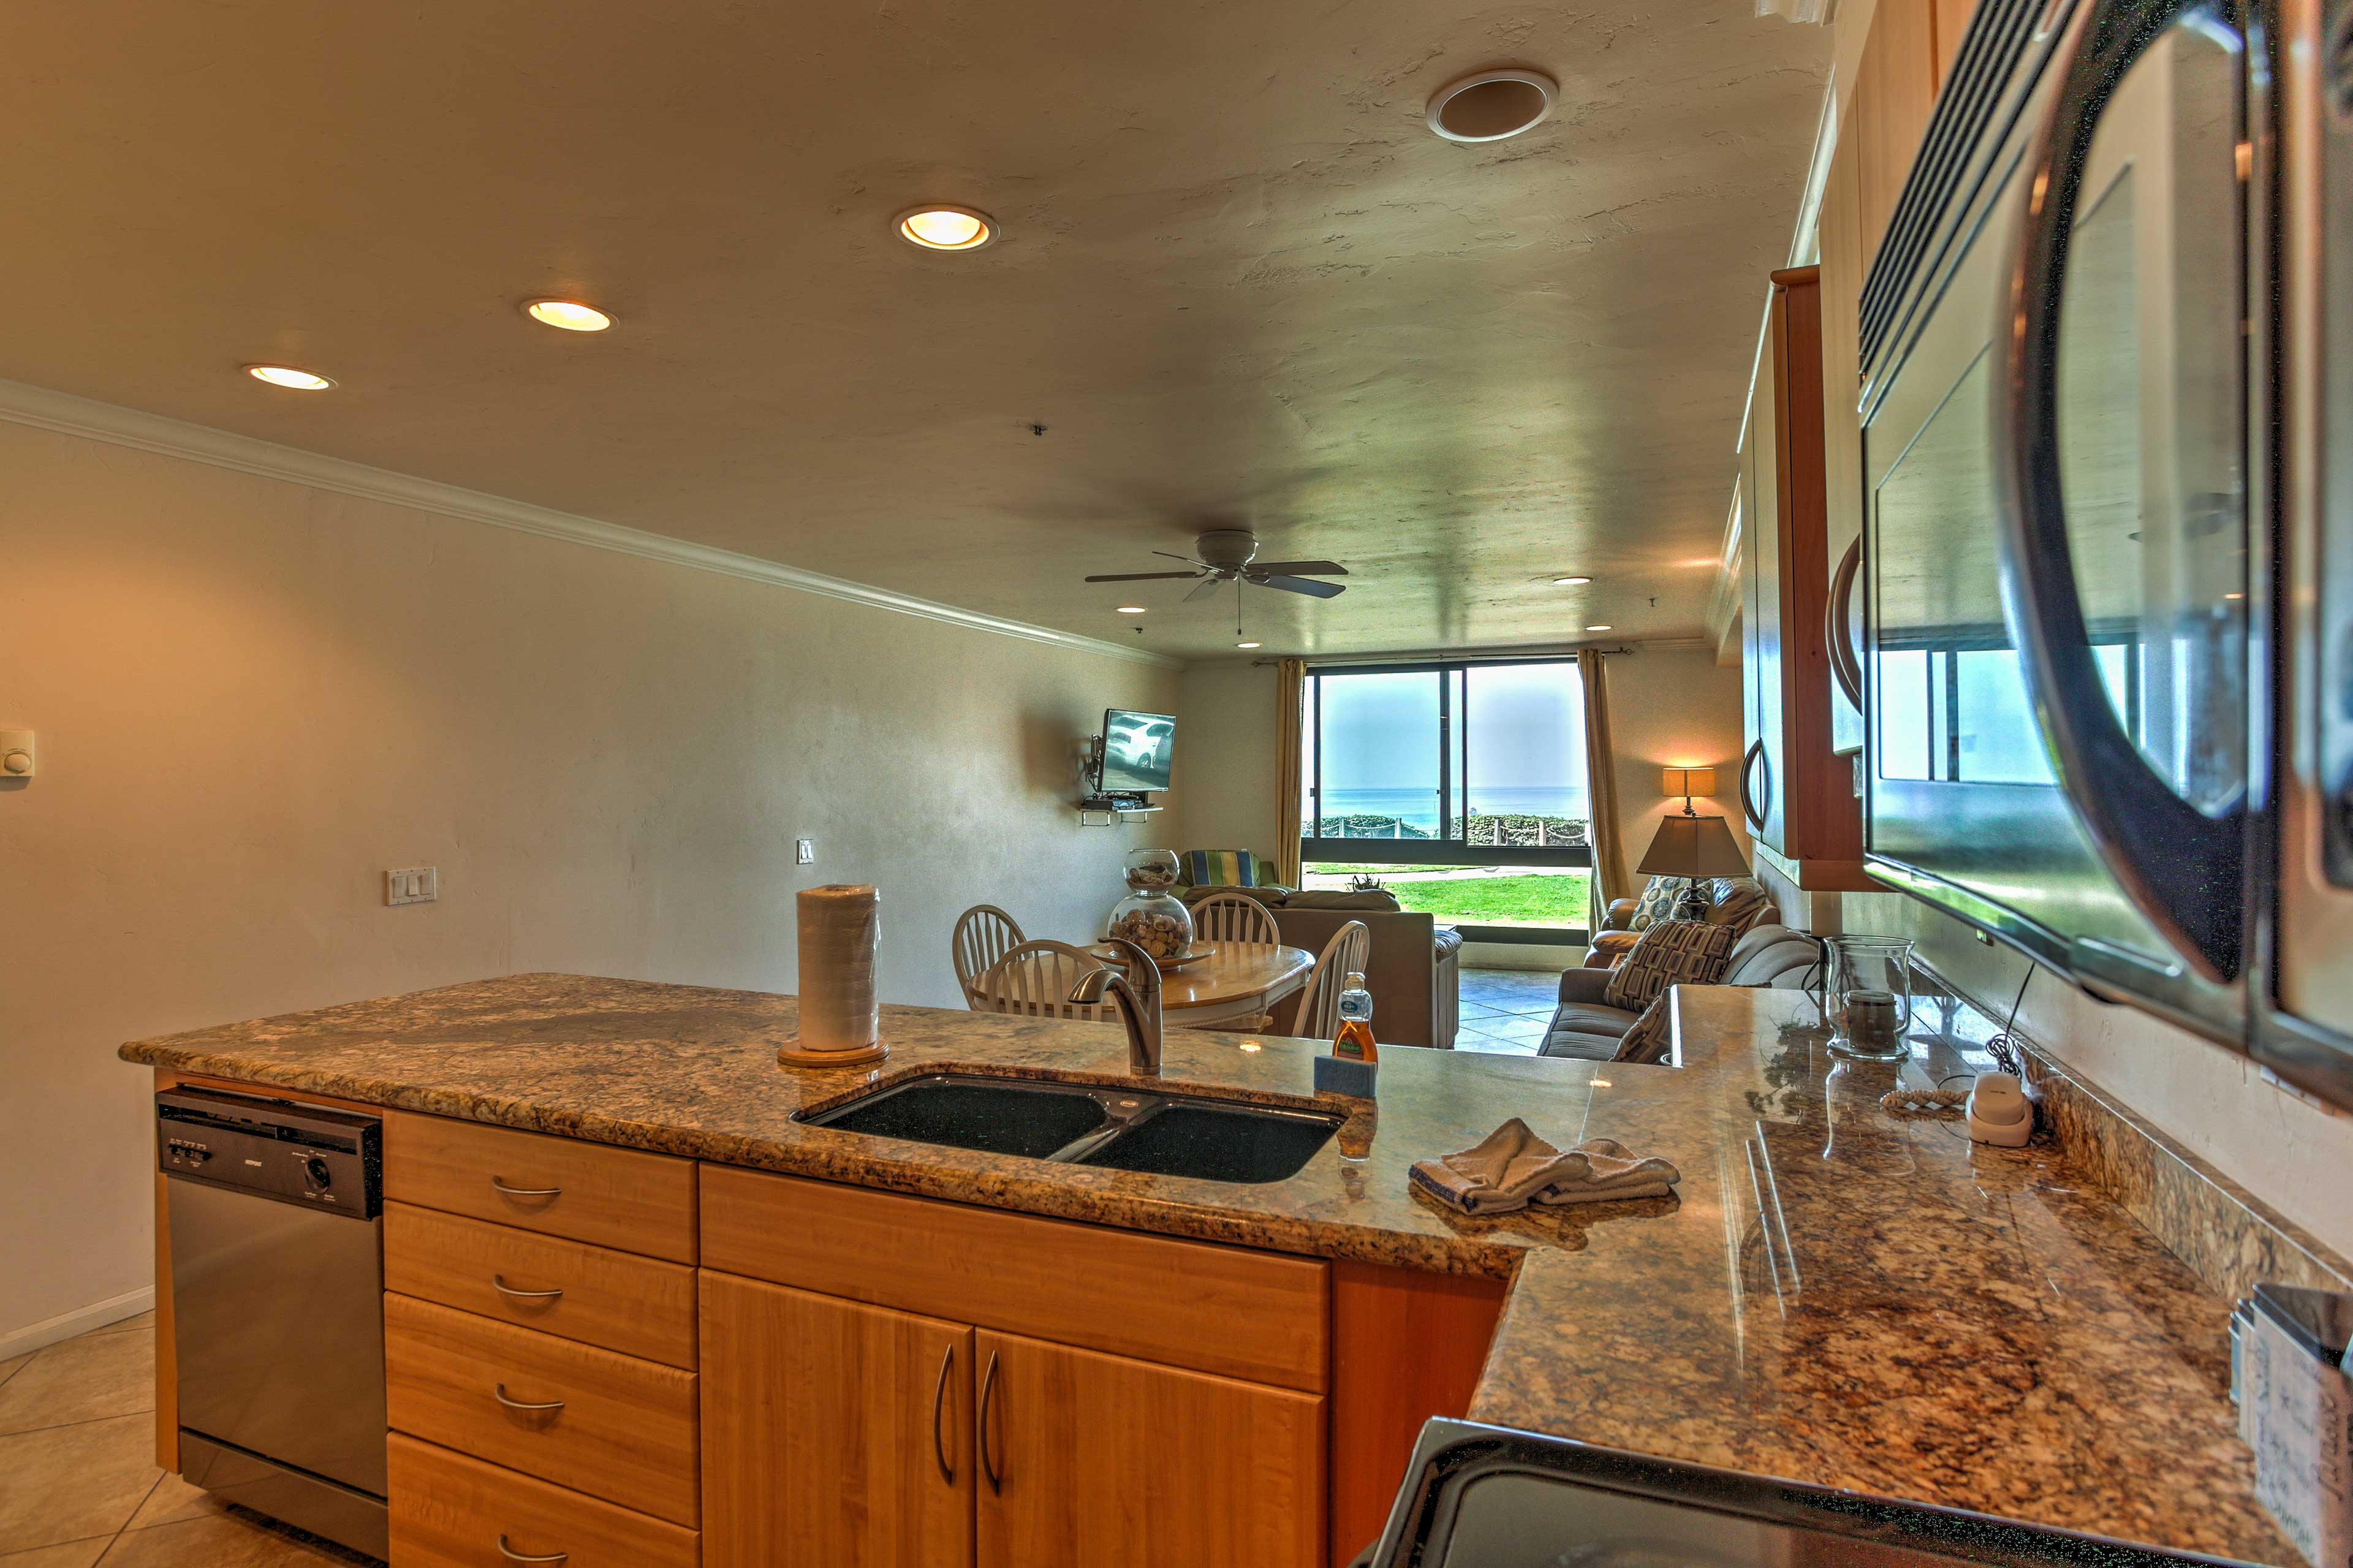 The kitchen features updated appliances and plenty of counter space.